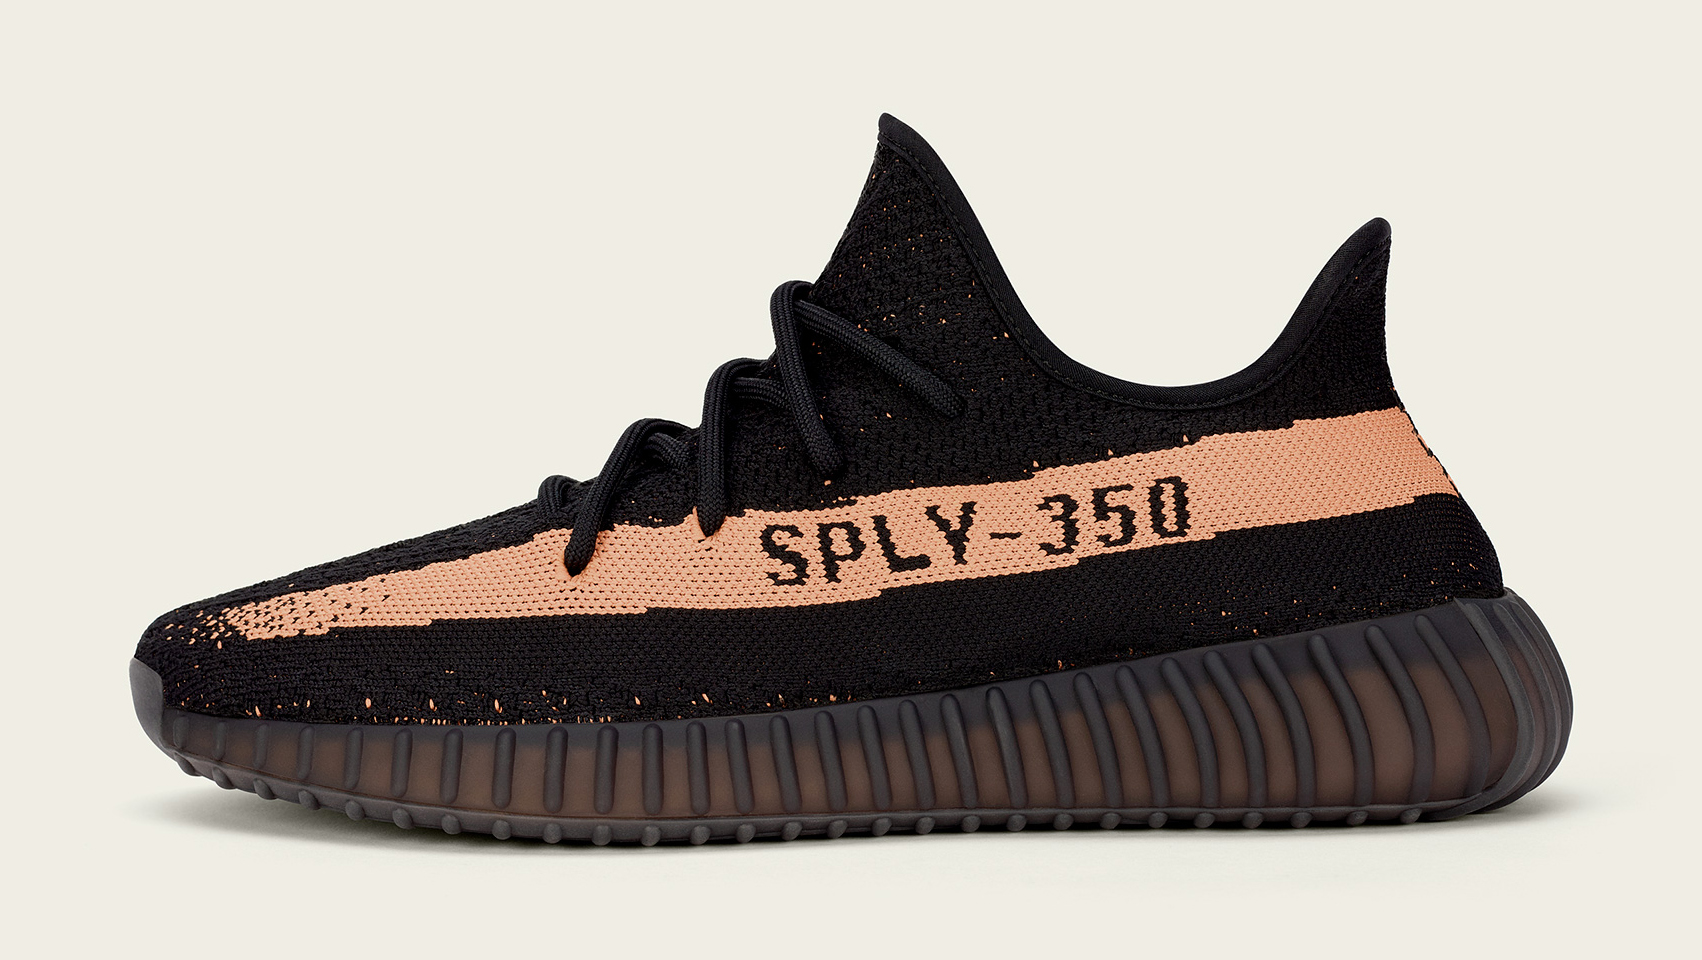 df20e40f0 Adidas Confirmed Yeezy 350 Boost V2 Black Copper Green Red